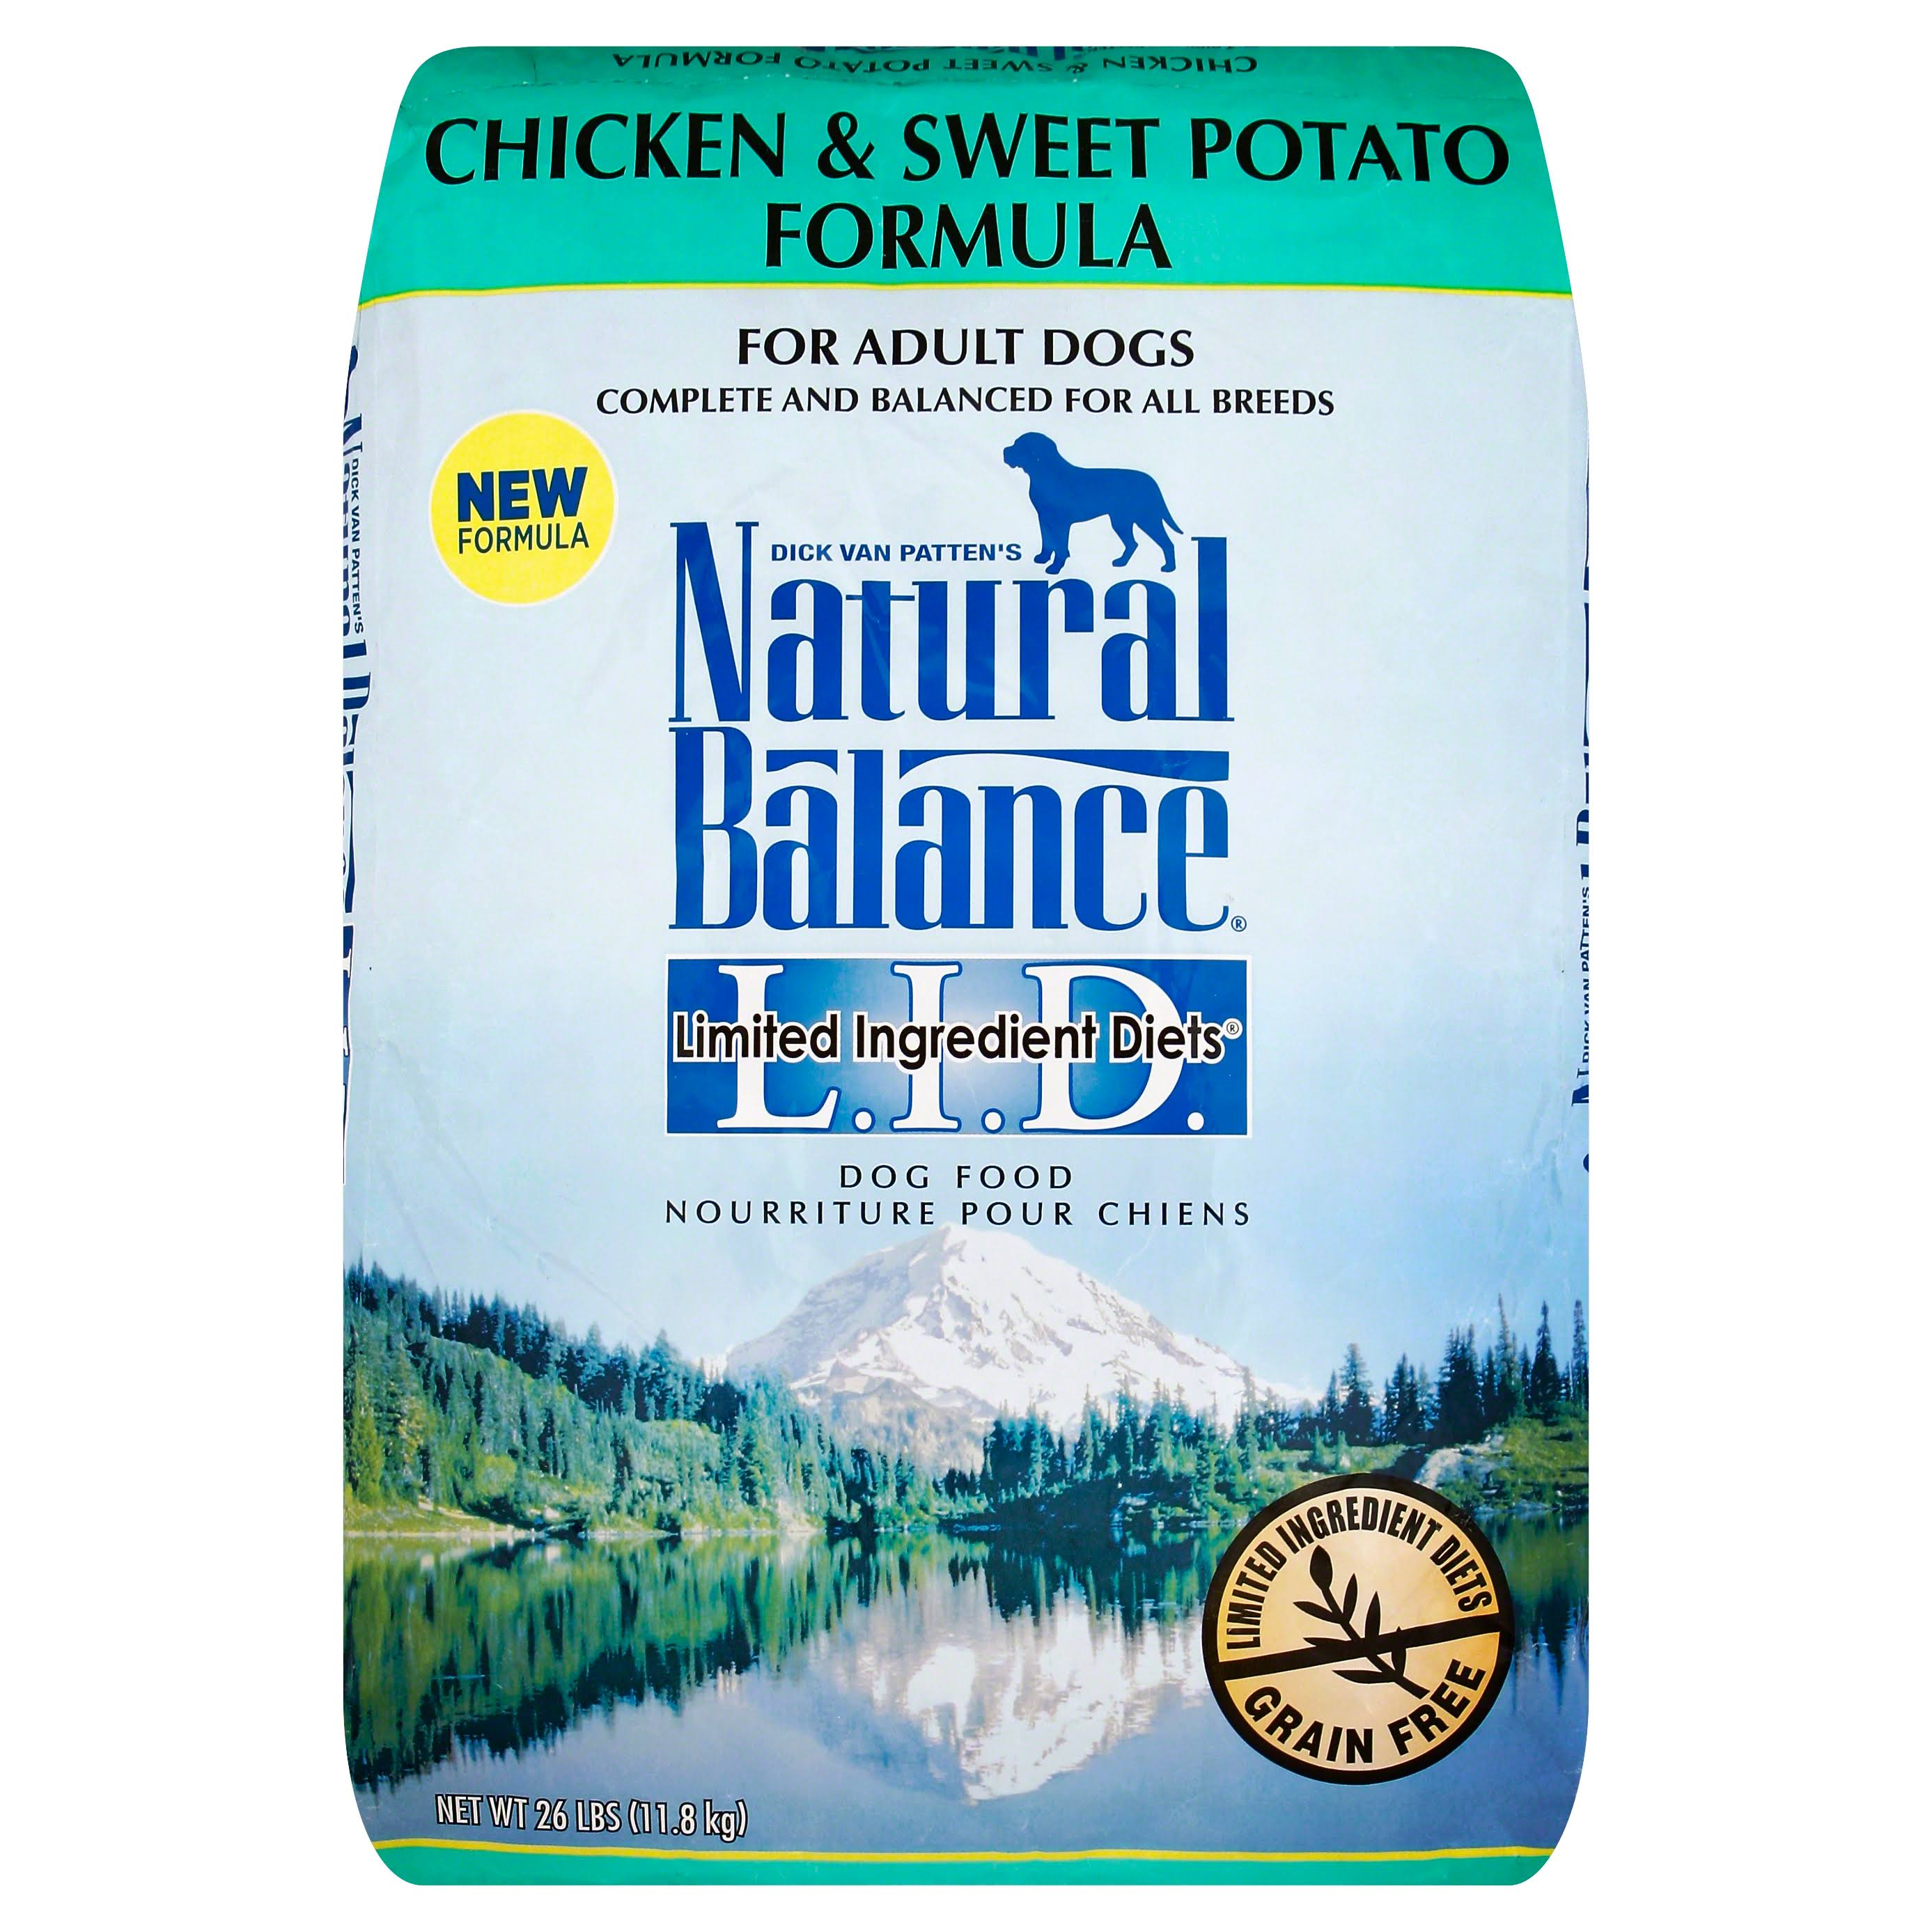 Natural Balance LID Dog Food - Chicken & Sweet Potato, 26lb